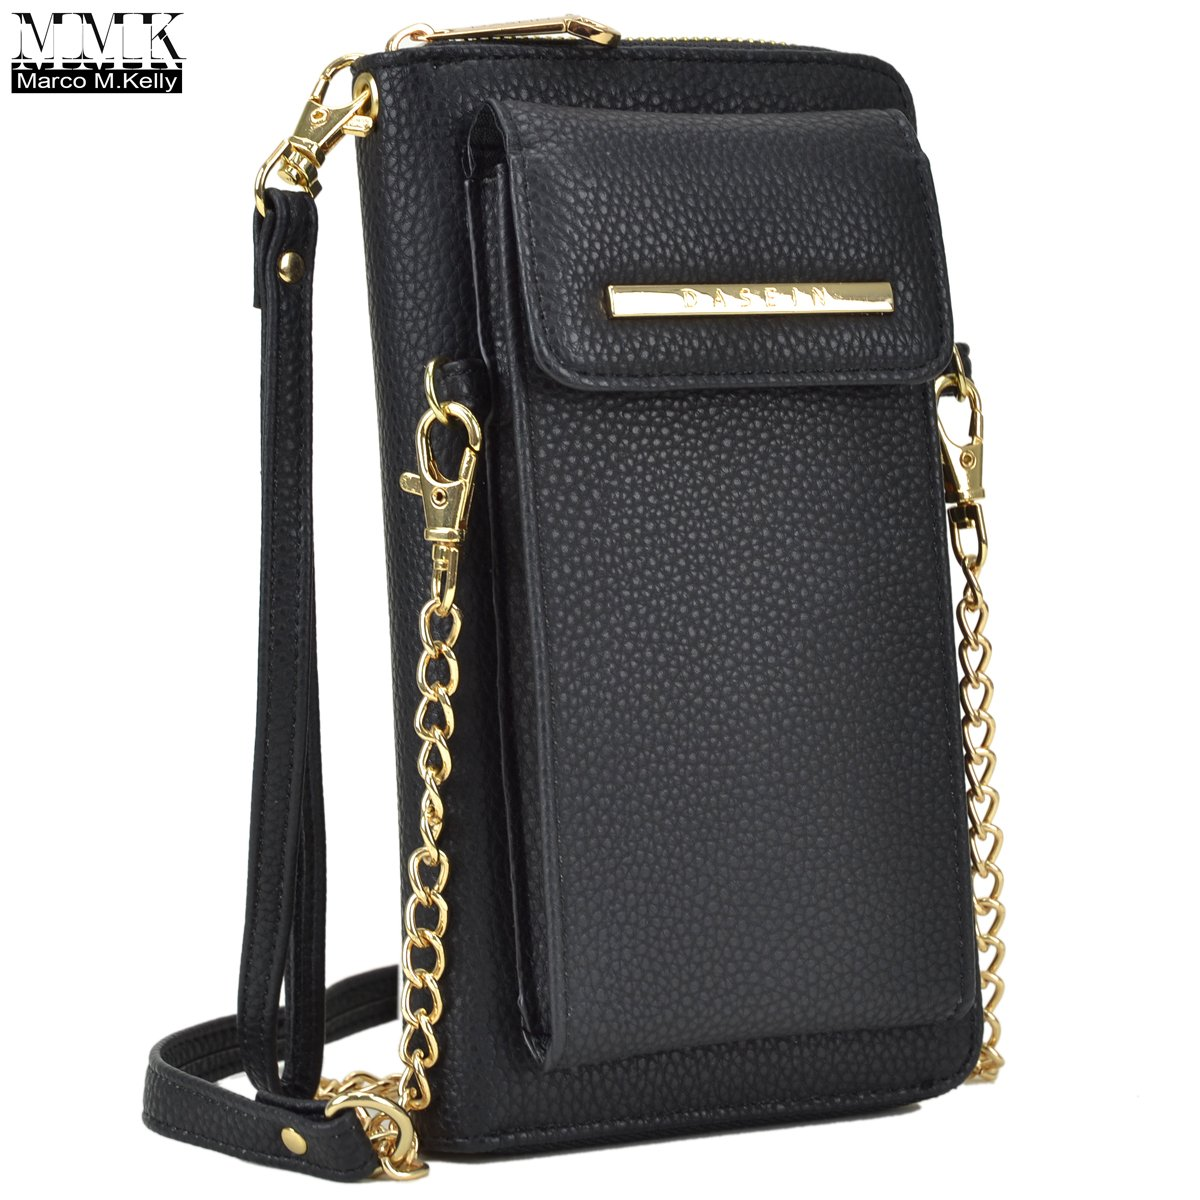 MMK Collection Easy-To-Carry Small Size Women Crossbody Wallet, Organizer pouch, with Phone case and Detachable Chain Strap(3020) (MA-3020-BK)